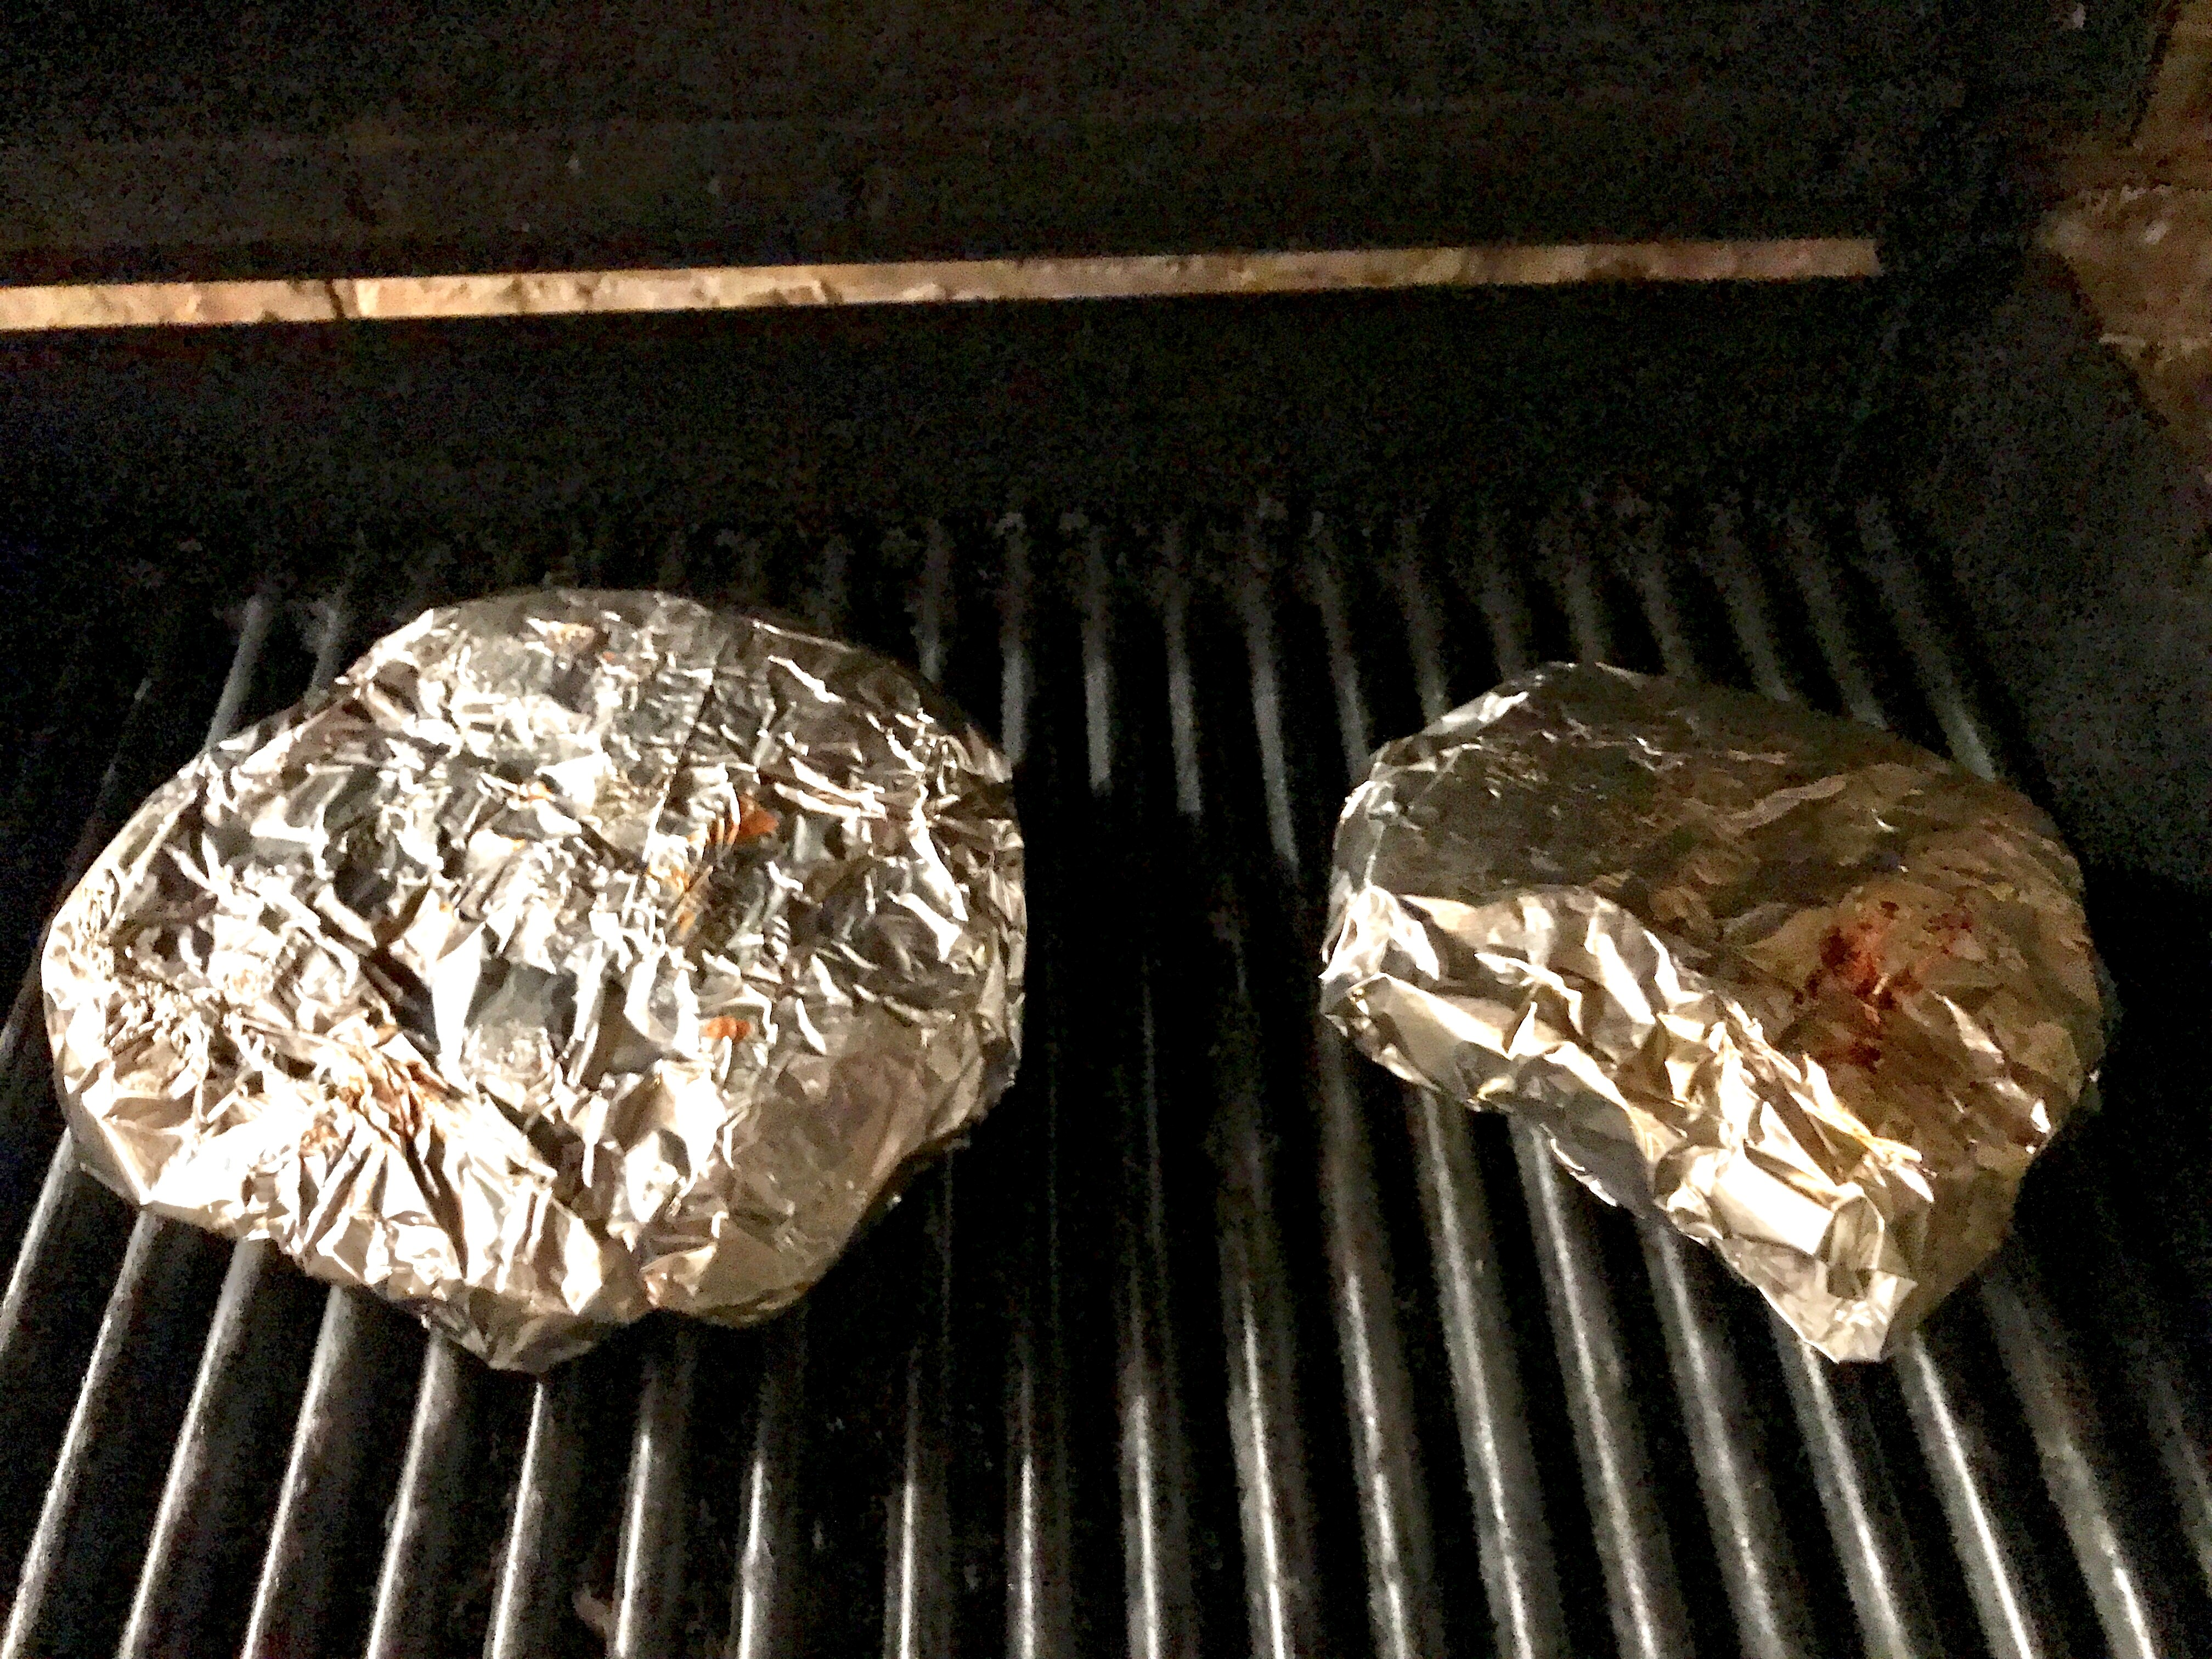 packets on grill